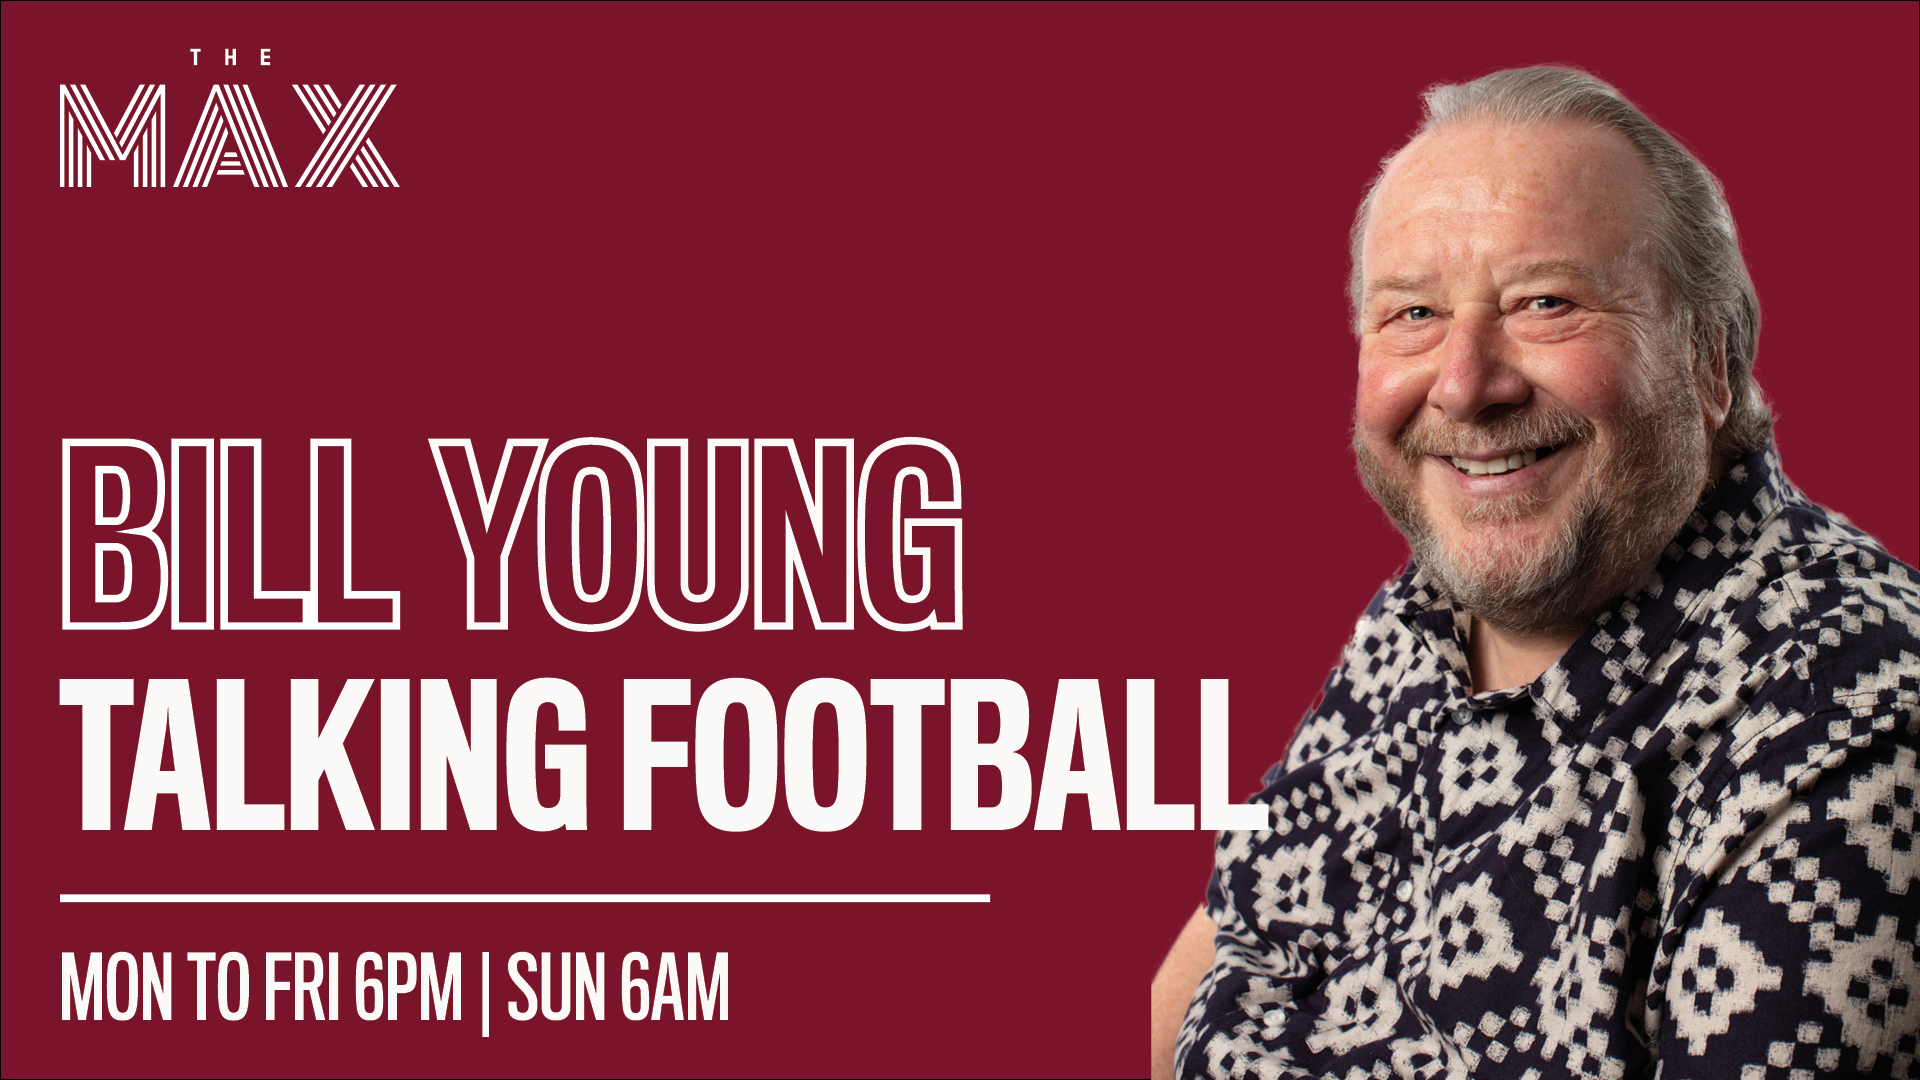 Talking Football with Bill Young - Wednesday 24th February